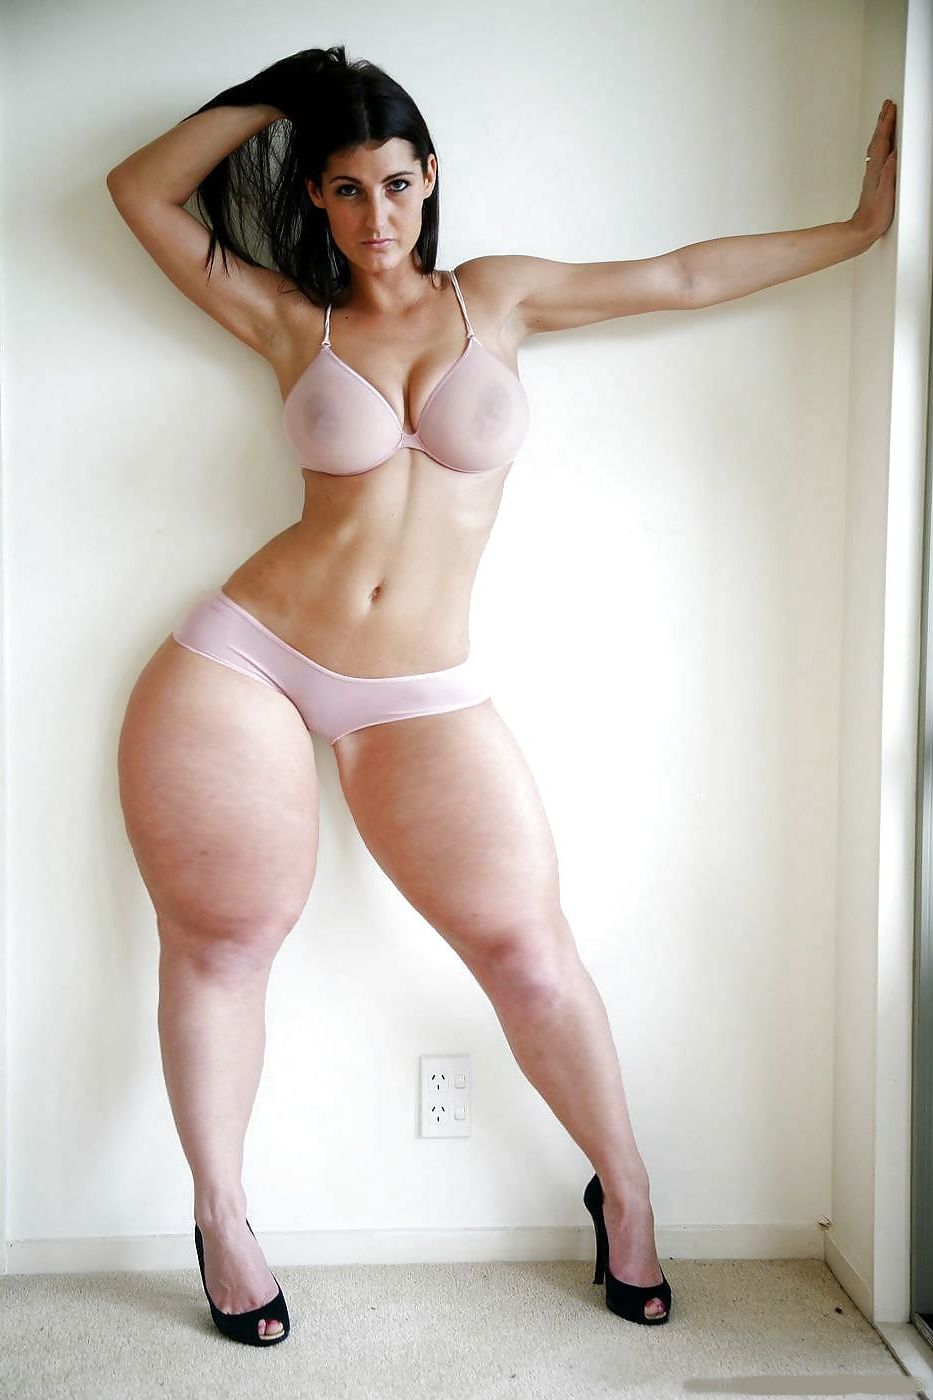 Very pity white women with wide hips big ass consider